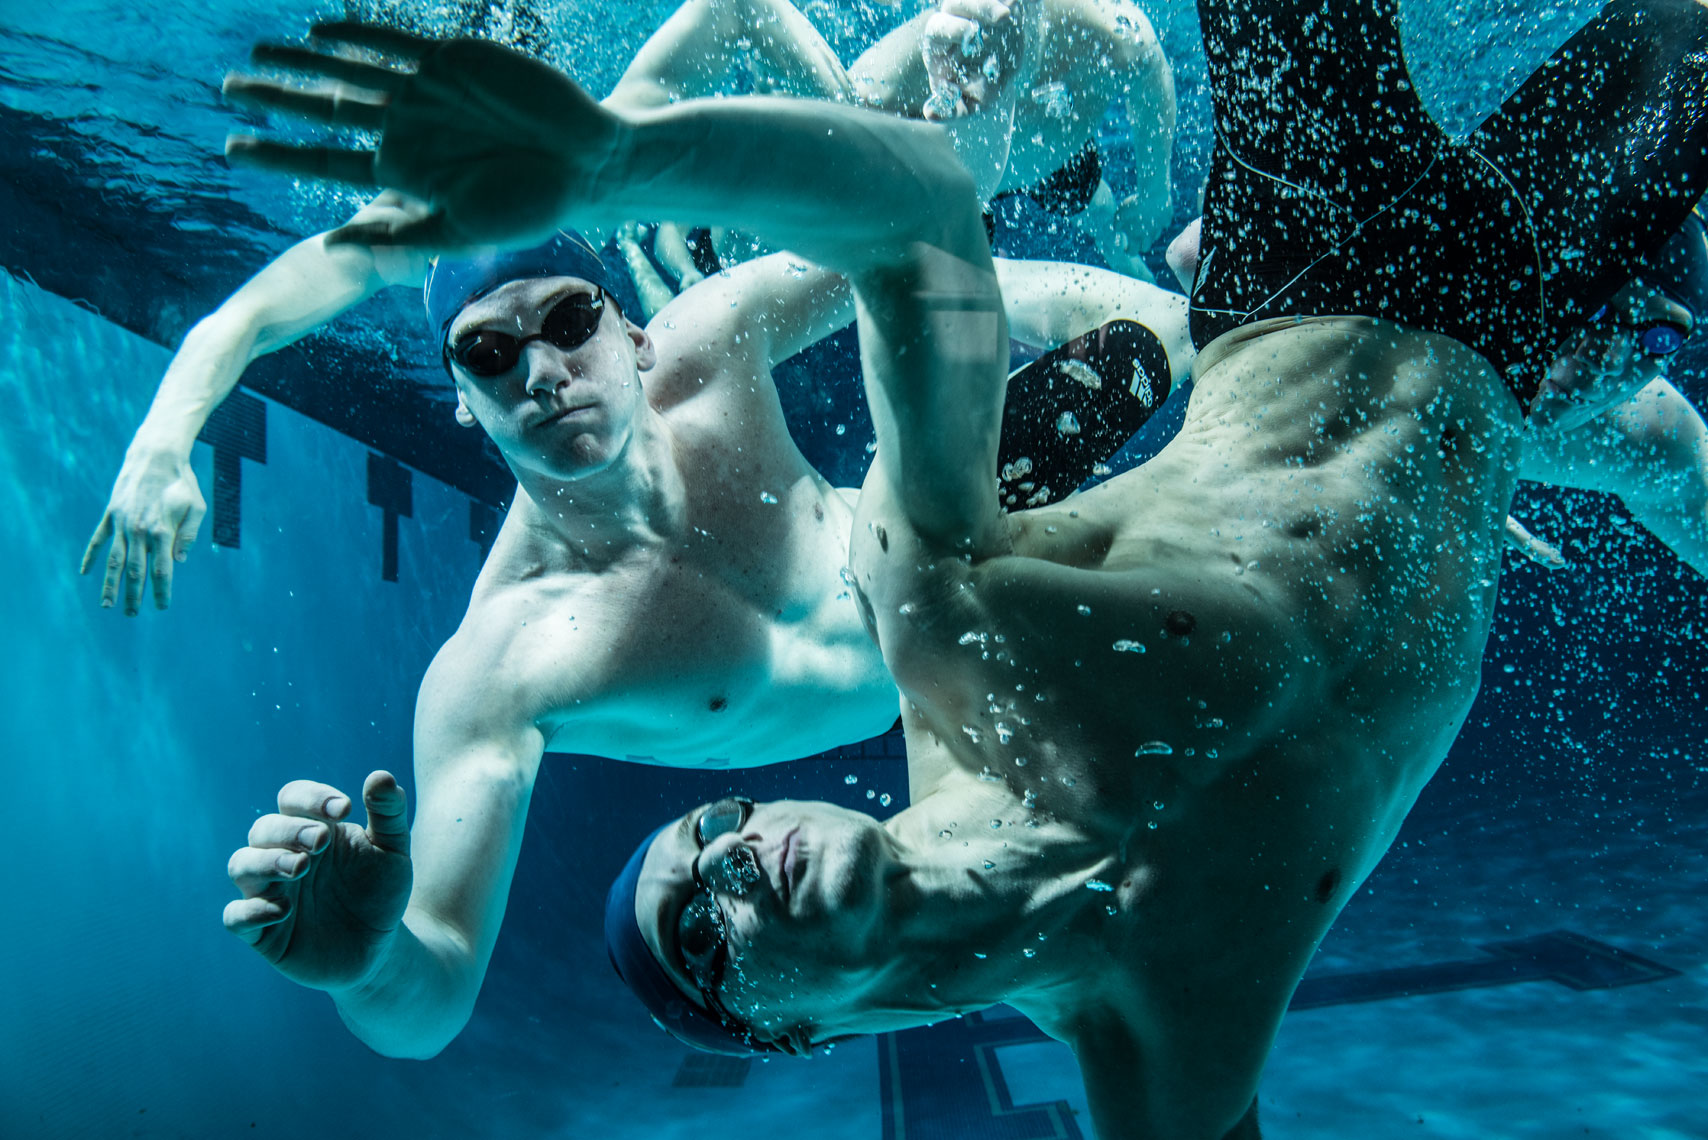 TCNJ swim team, by student athlete photographer Mike Morgan